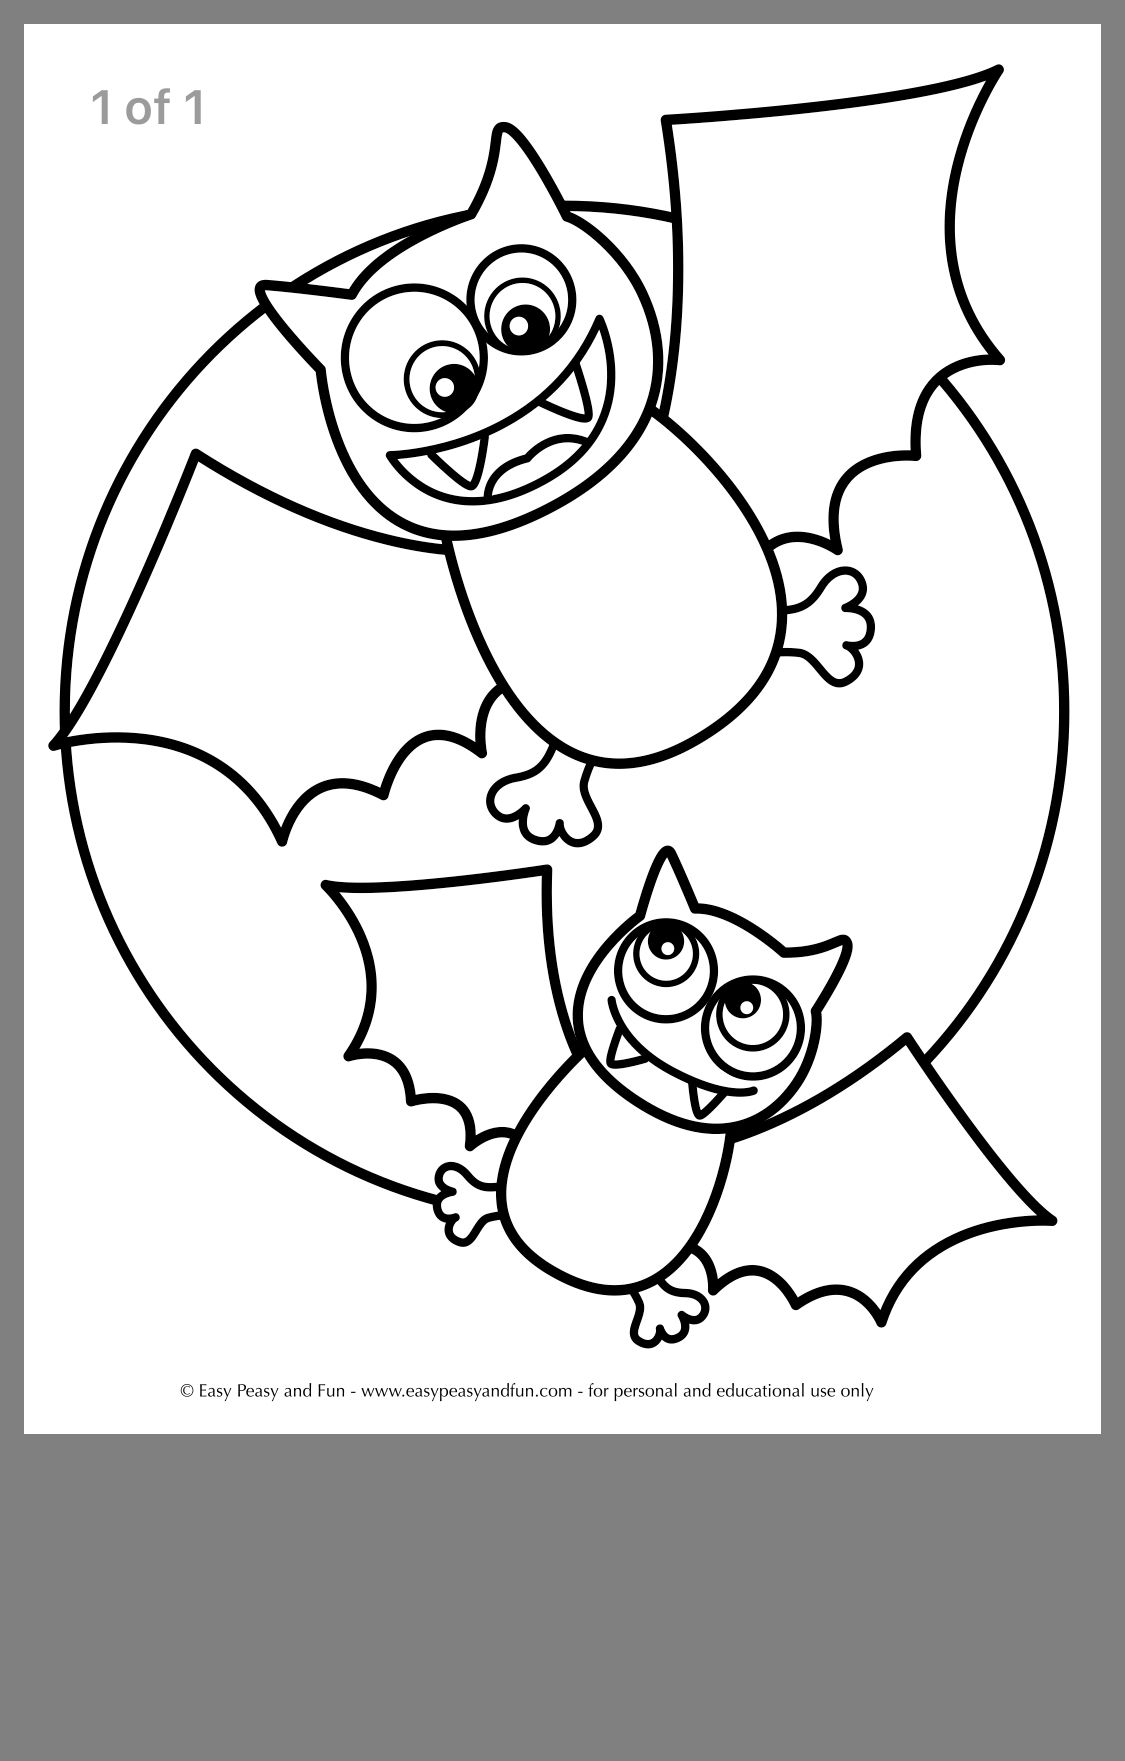 Pin By Lisa Jane On Halloween Halloween Coloring Pages Halloween Coloring Pictures Free Halloween Coloring Pages